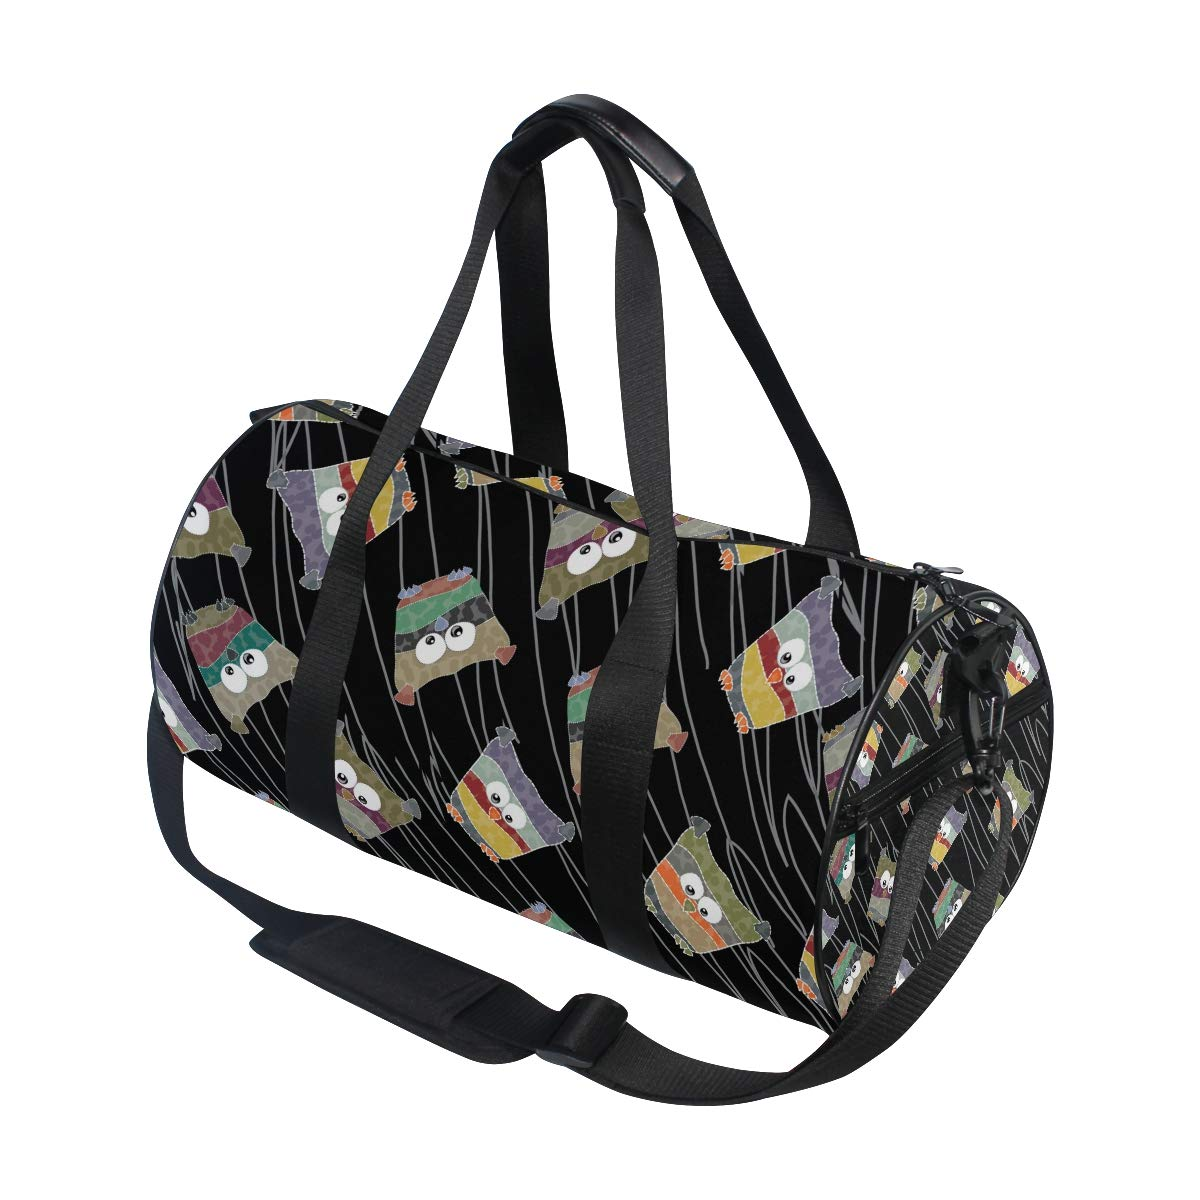 WIHVE Gym Duffel Bag Abstract Colored Owls Lines Sports Lightweight Canvas Travel Luggage Bag